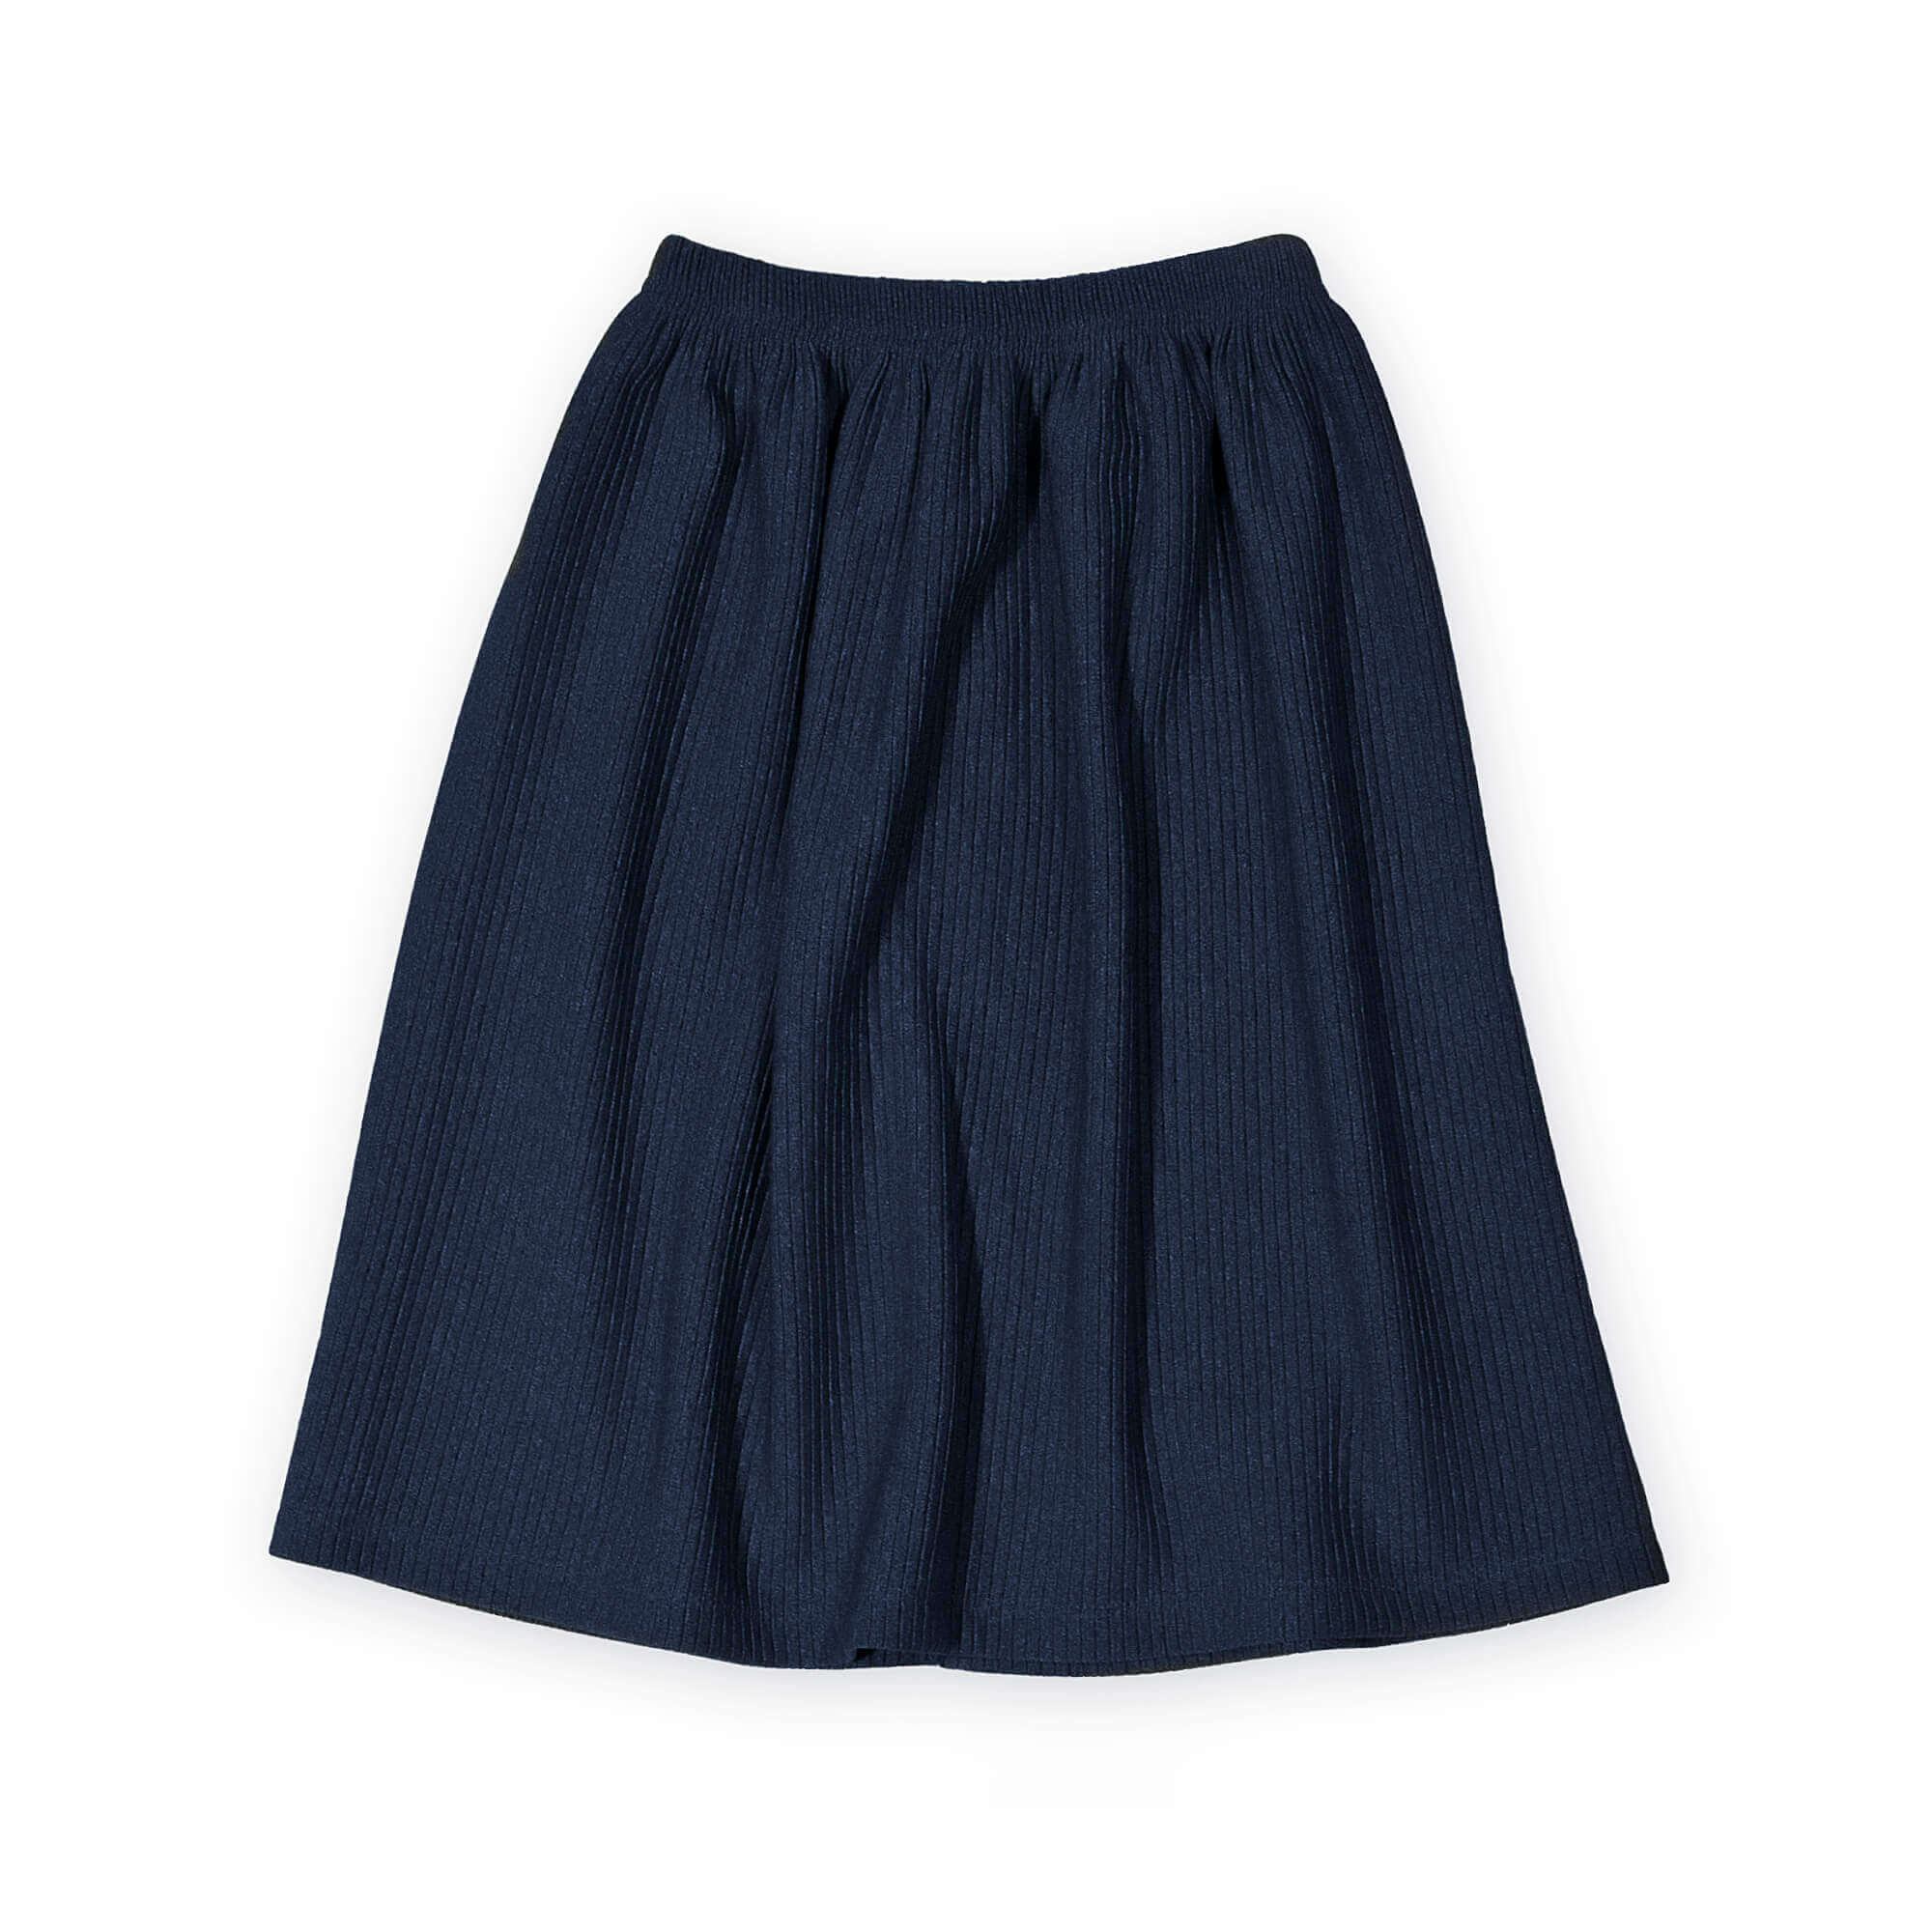 Shop eBay for great deals on Blue Skirts for Women. You'll find new or used products in Blue Skirts for Women on eBay. Free shipping on selected items.